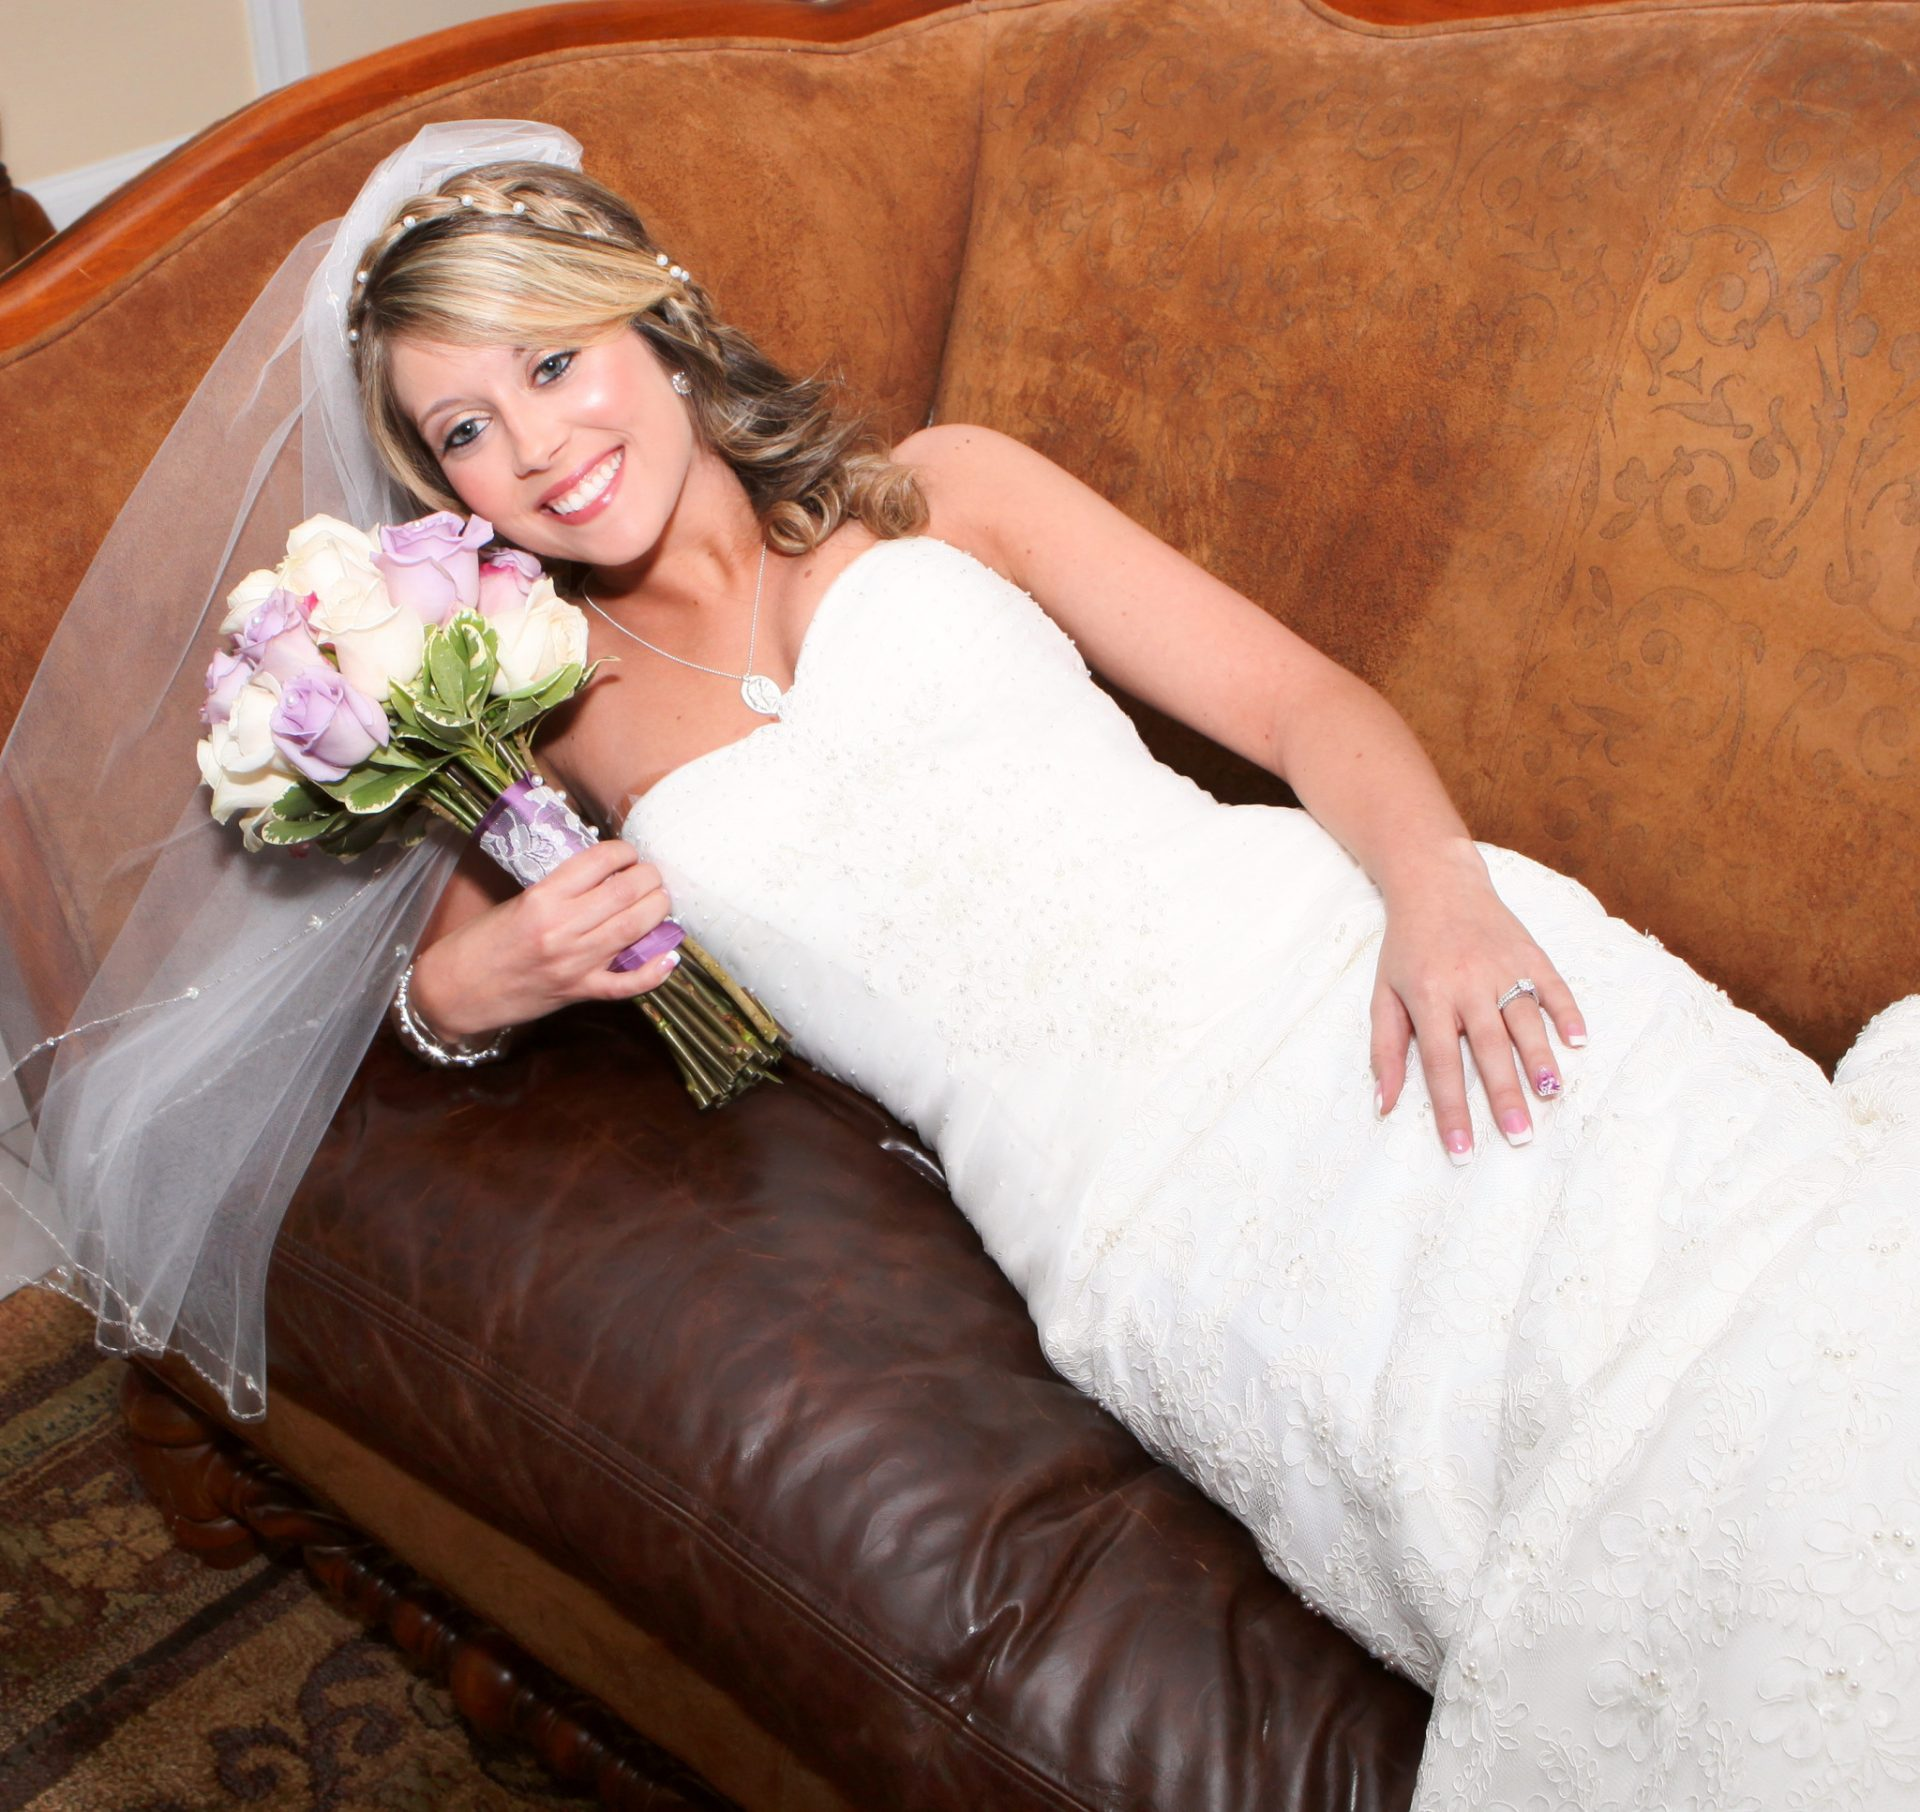 Bride's room at morningside inn with bride laying on leather couch